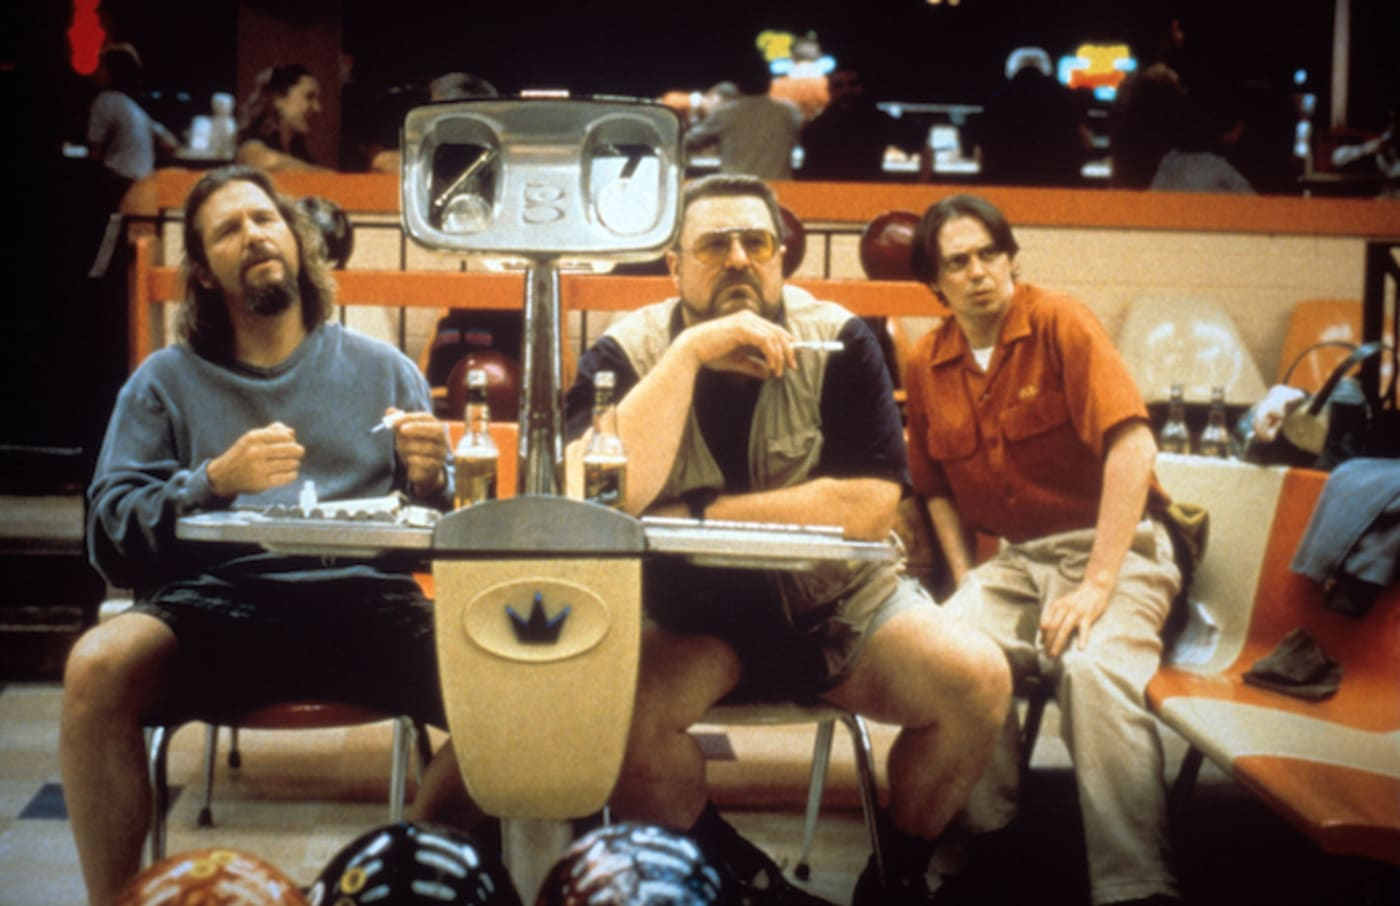 Jeff Bridges, John Goodman and Steve Buscemi as the bowling teammates Dude, Walter and Donny.